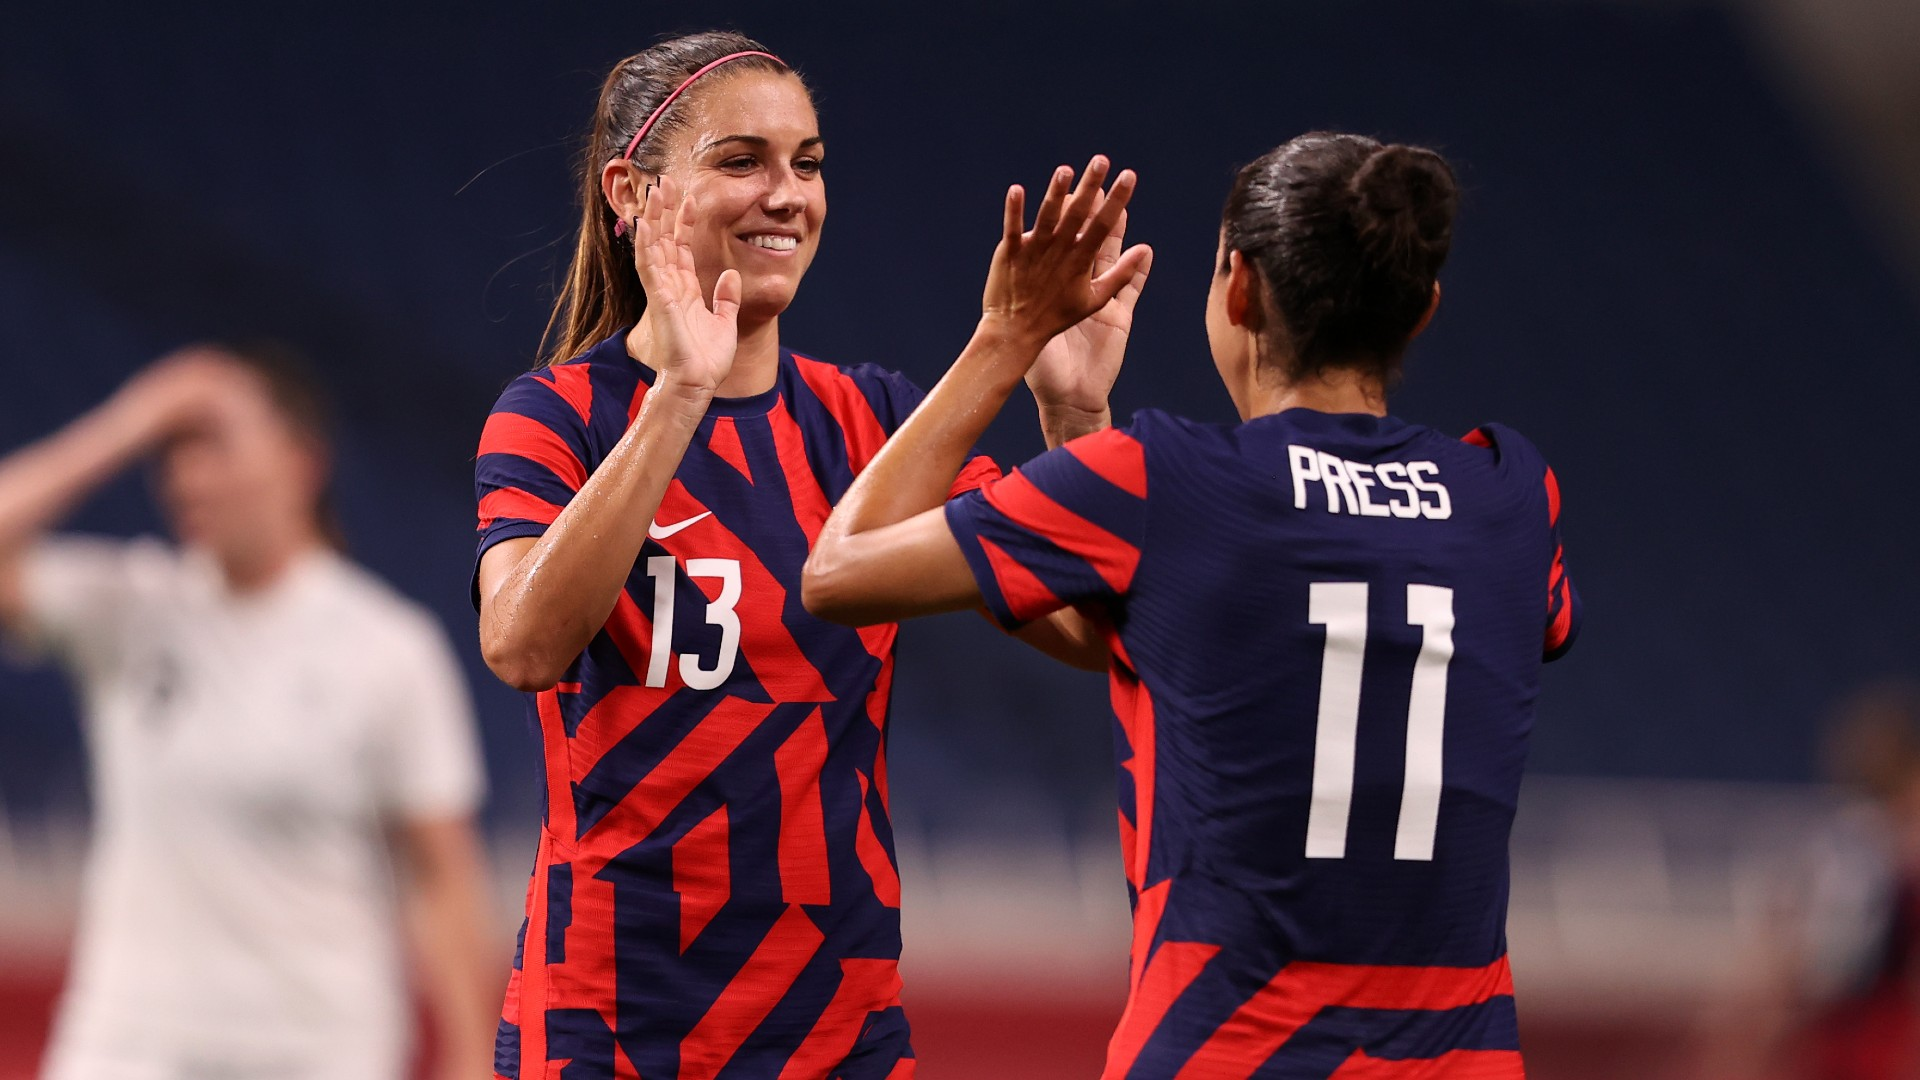 Tokyo Olympics: USA respond in style as hat-trick hero Banda ties record